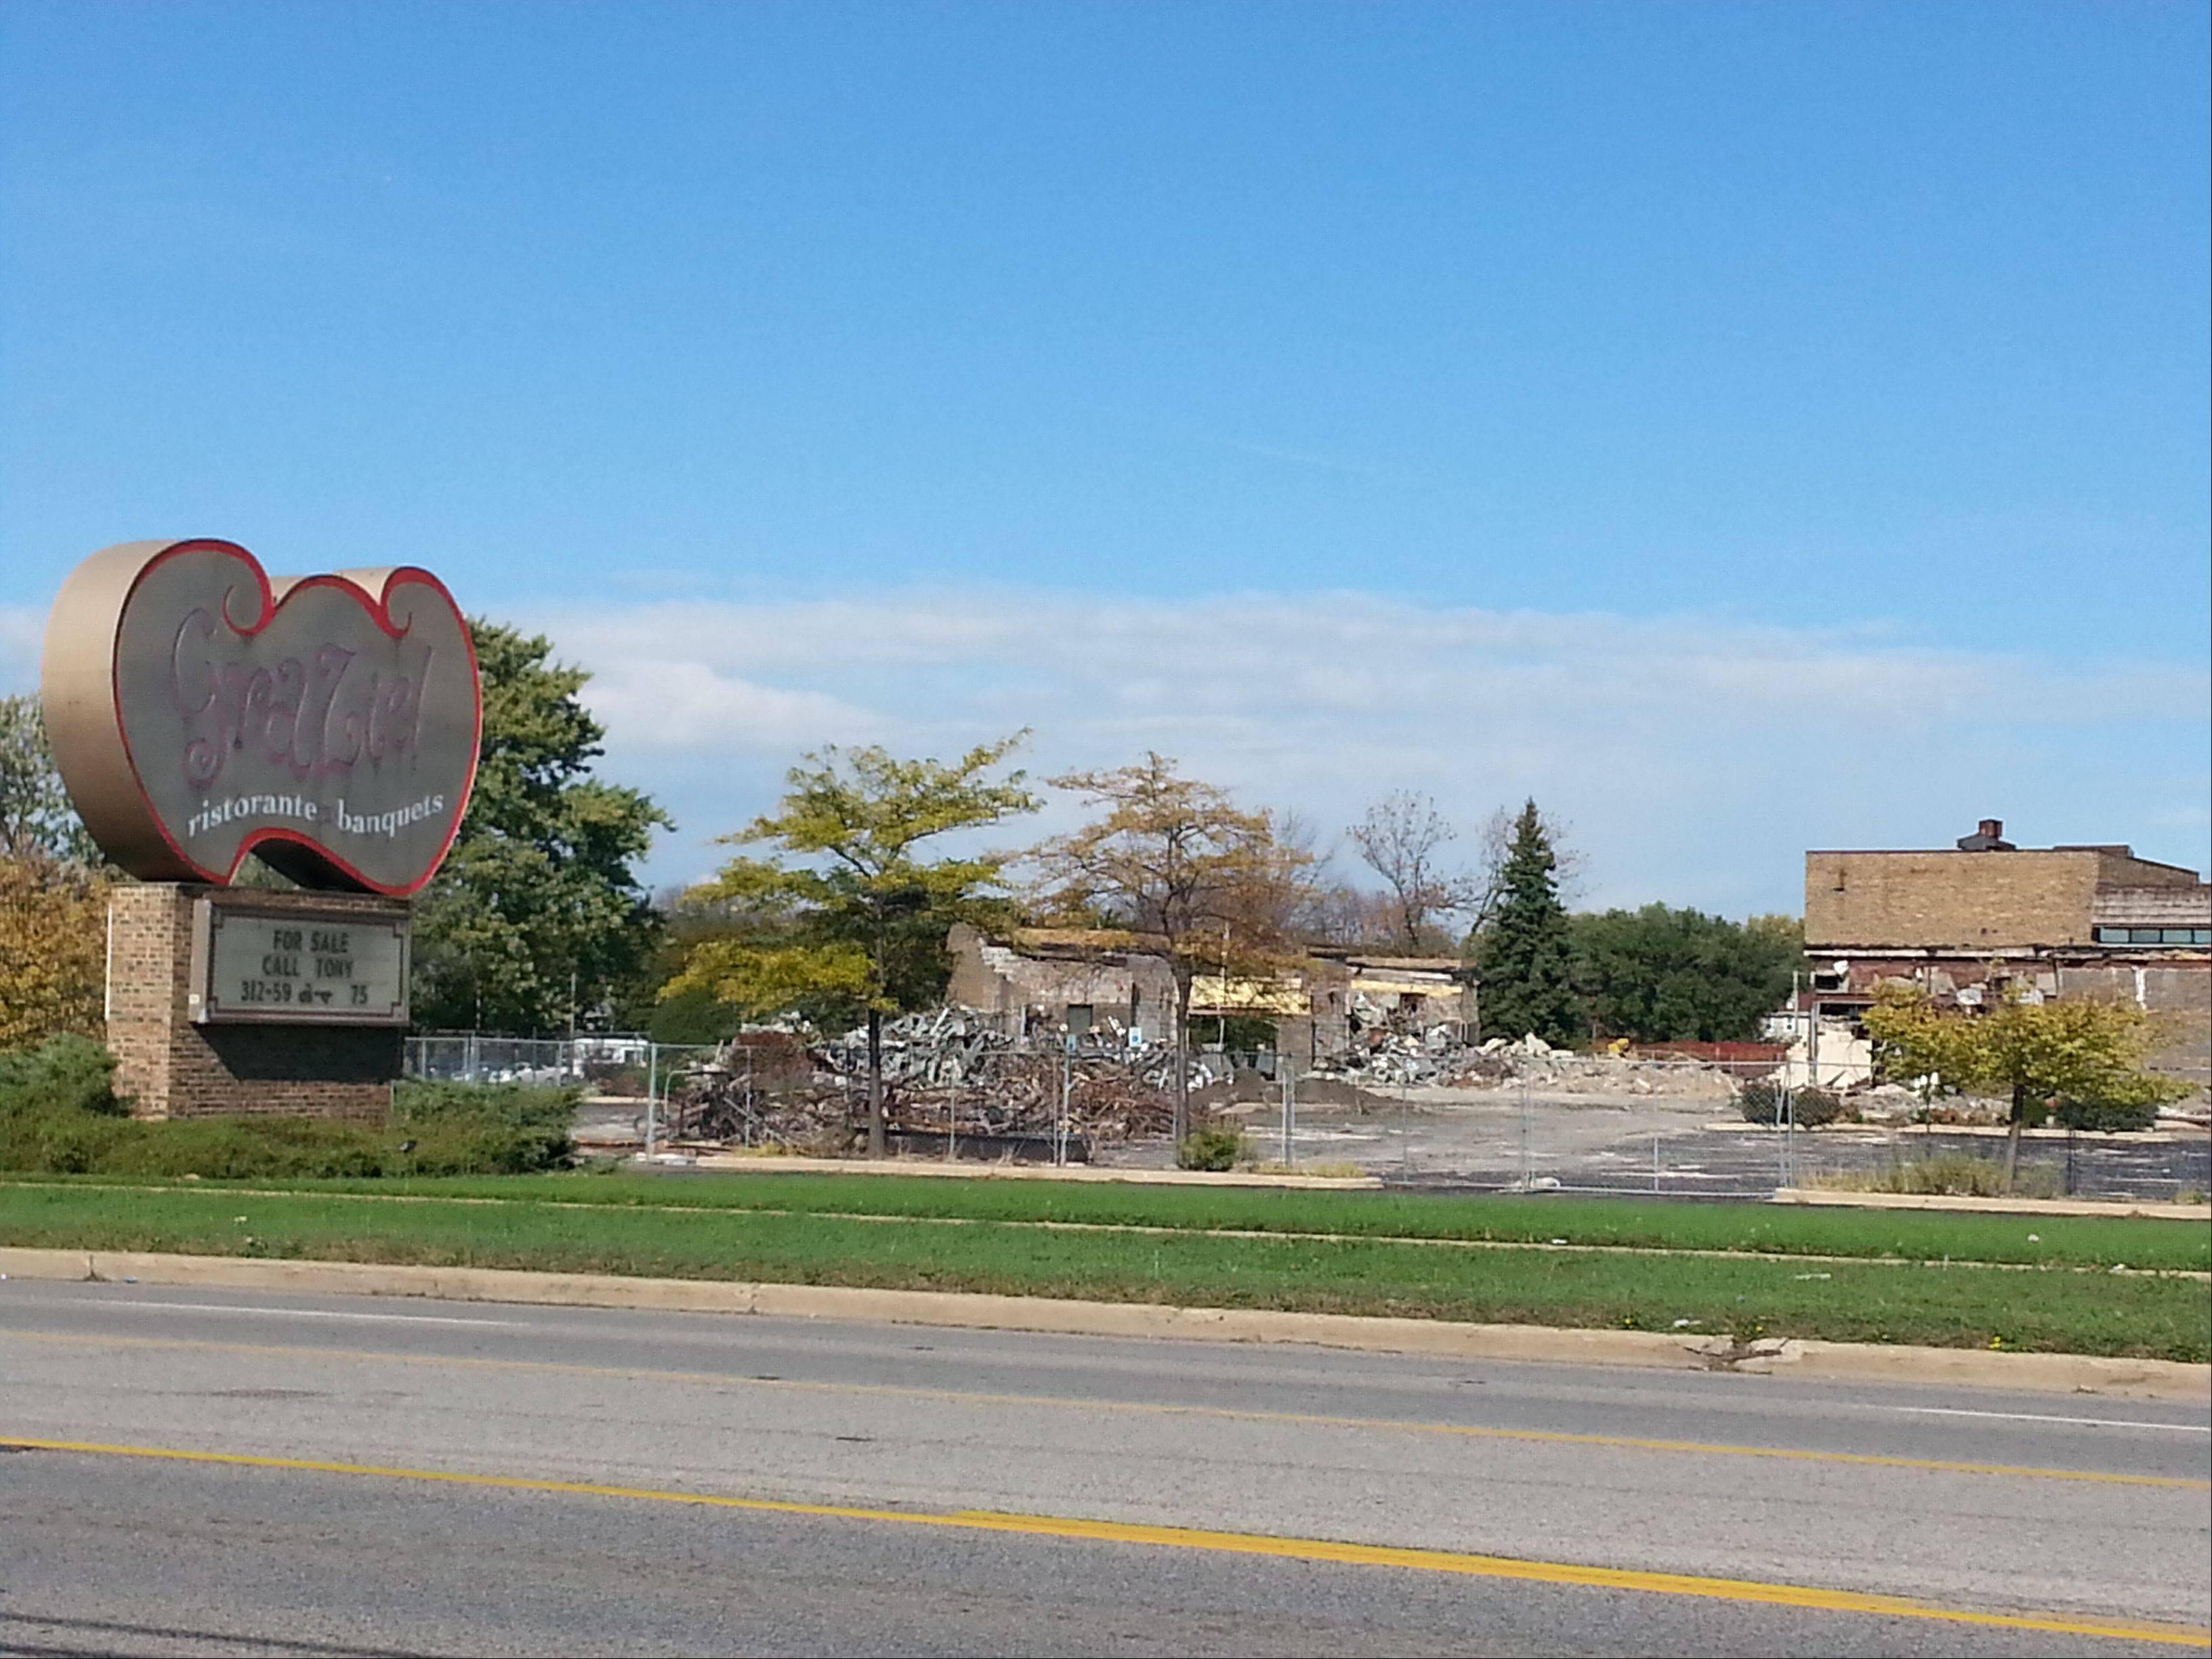 The former Grazie Ristorante in Des Plaines is being demolished to make way for a new fitness club, the site's new owner said Monday. The restaurant closed about two years ago after the property was foreclosed upon.